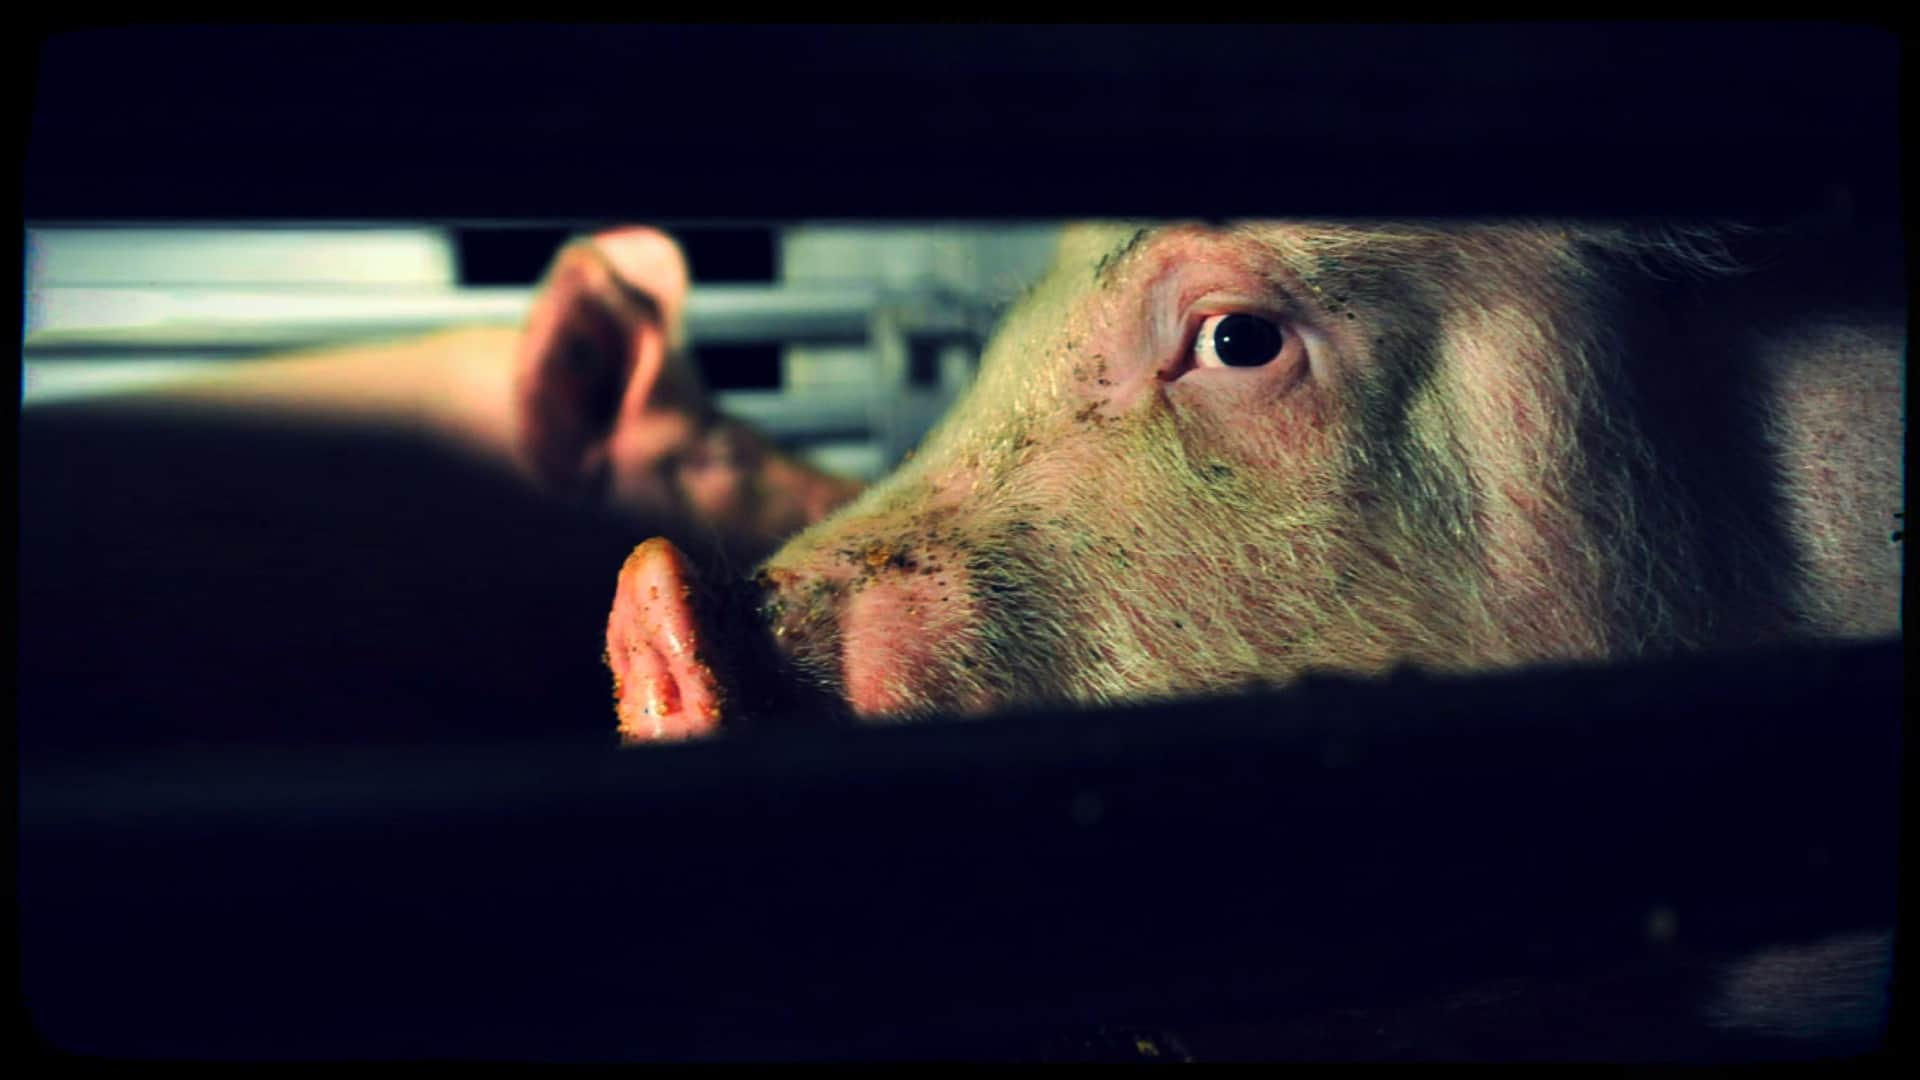 A haunting close-up of the face of a pig is shown through a cattle truck window.